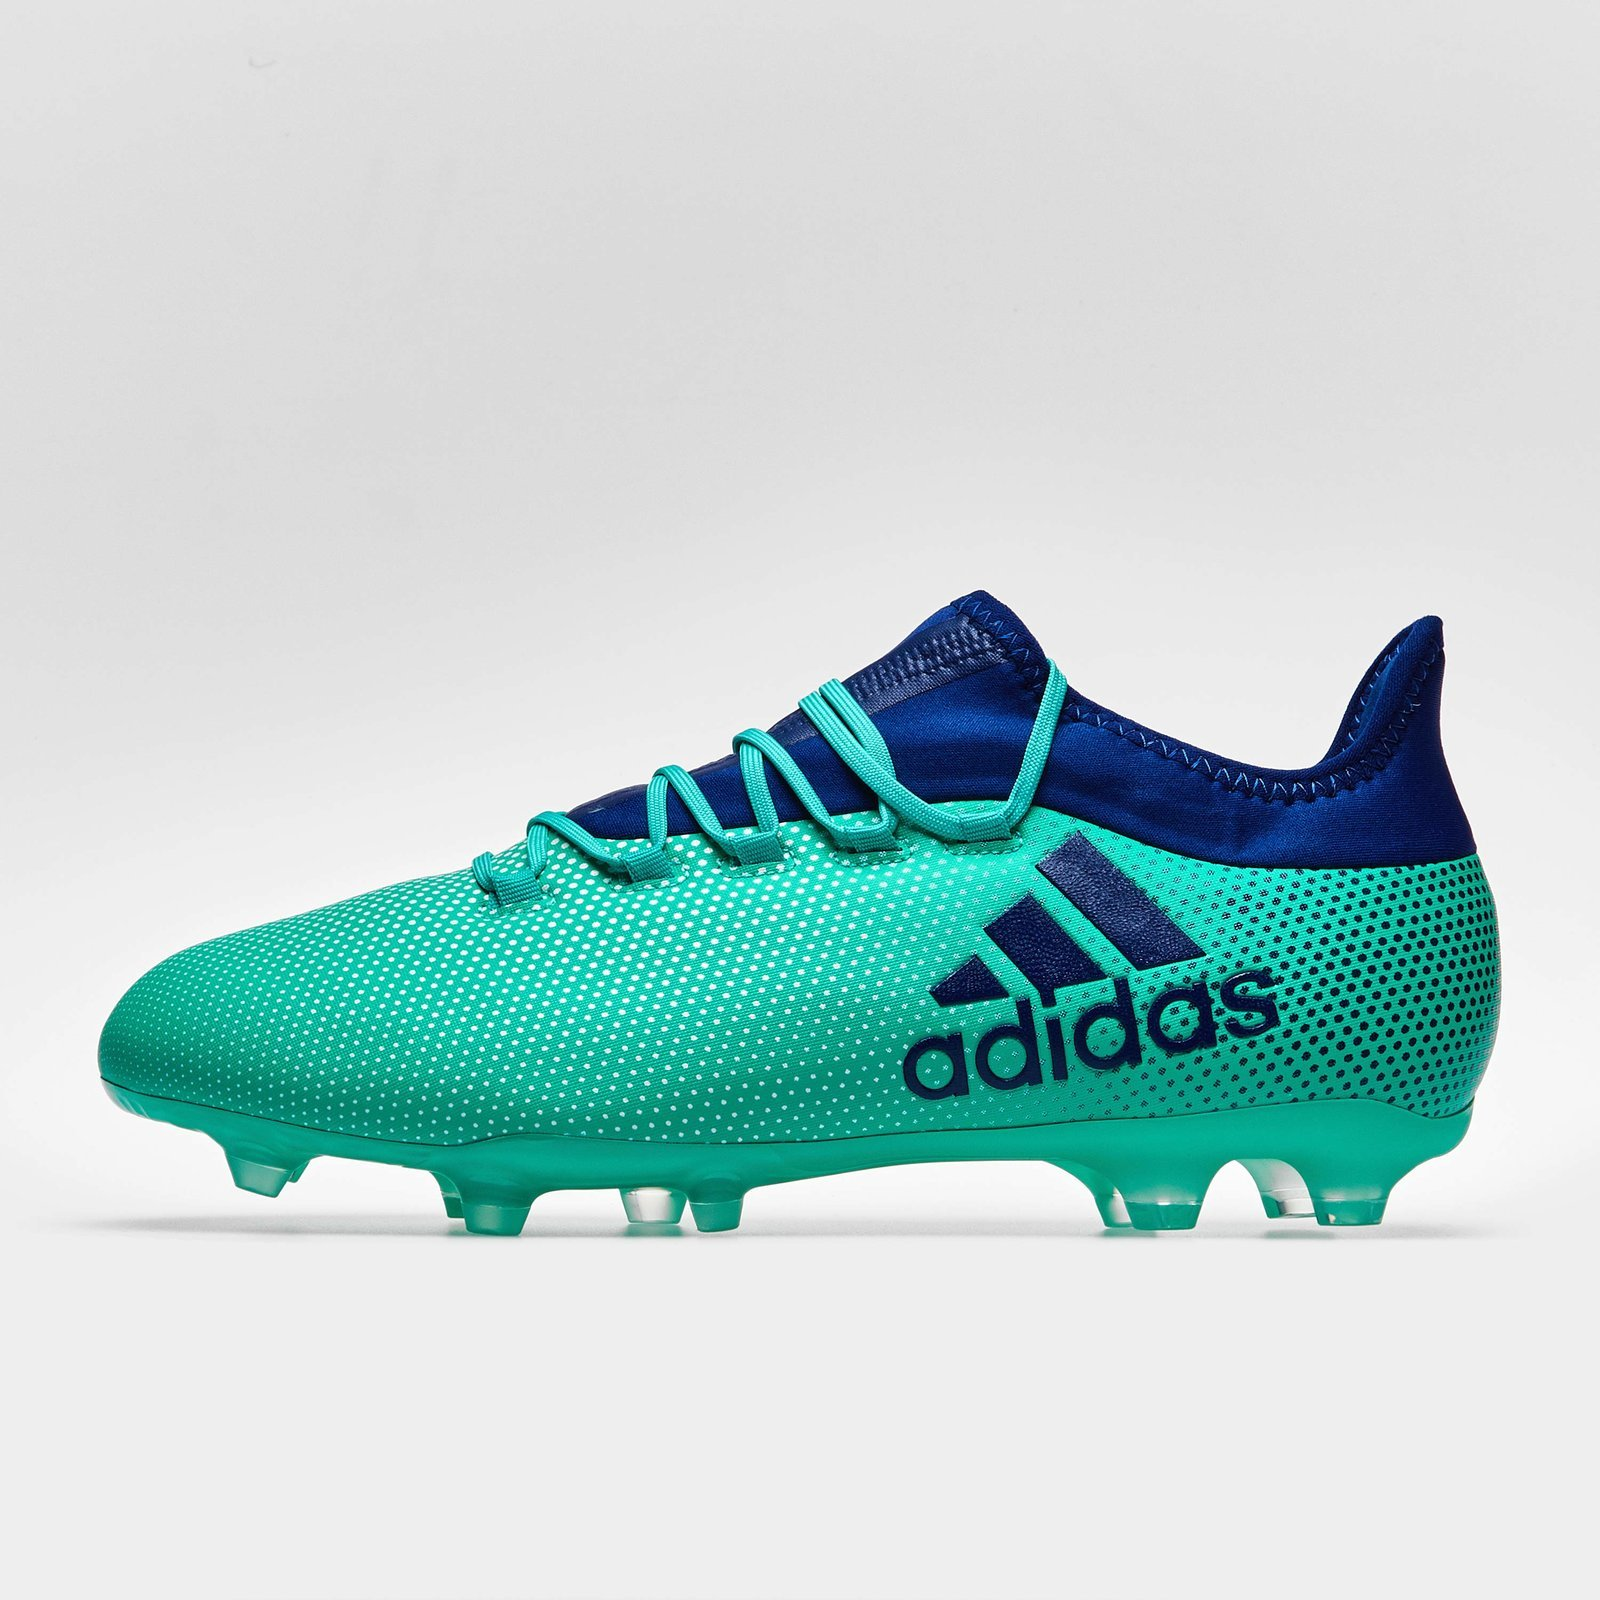 separation shoes a9ad8 6b6da adidas Mens X 17.2 Firm Ground Football Boots Studs Trainers Sports Shoes  Green